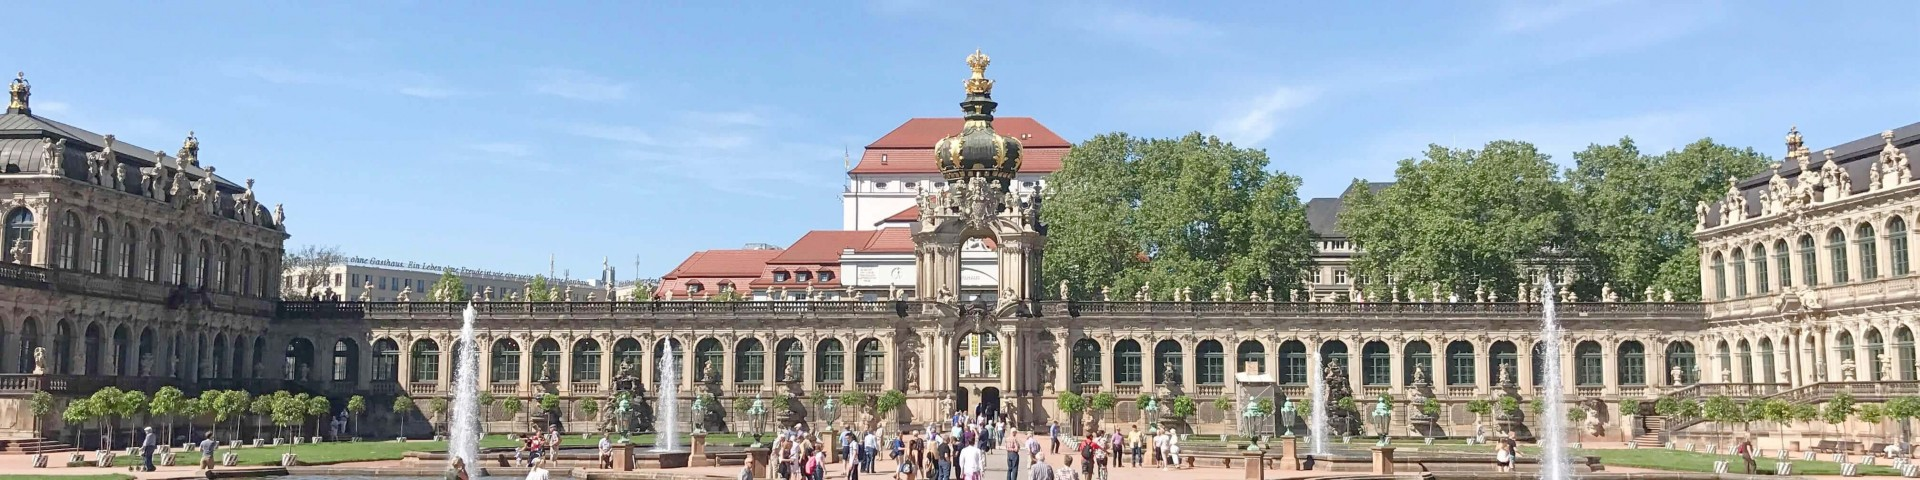 weekend in Dresden